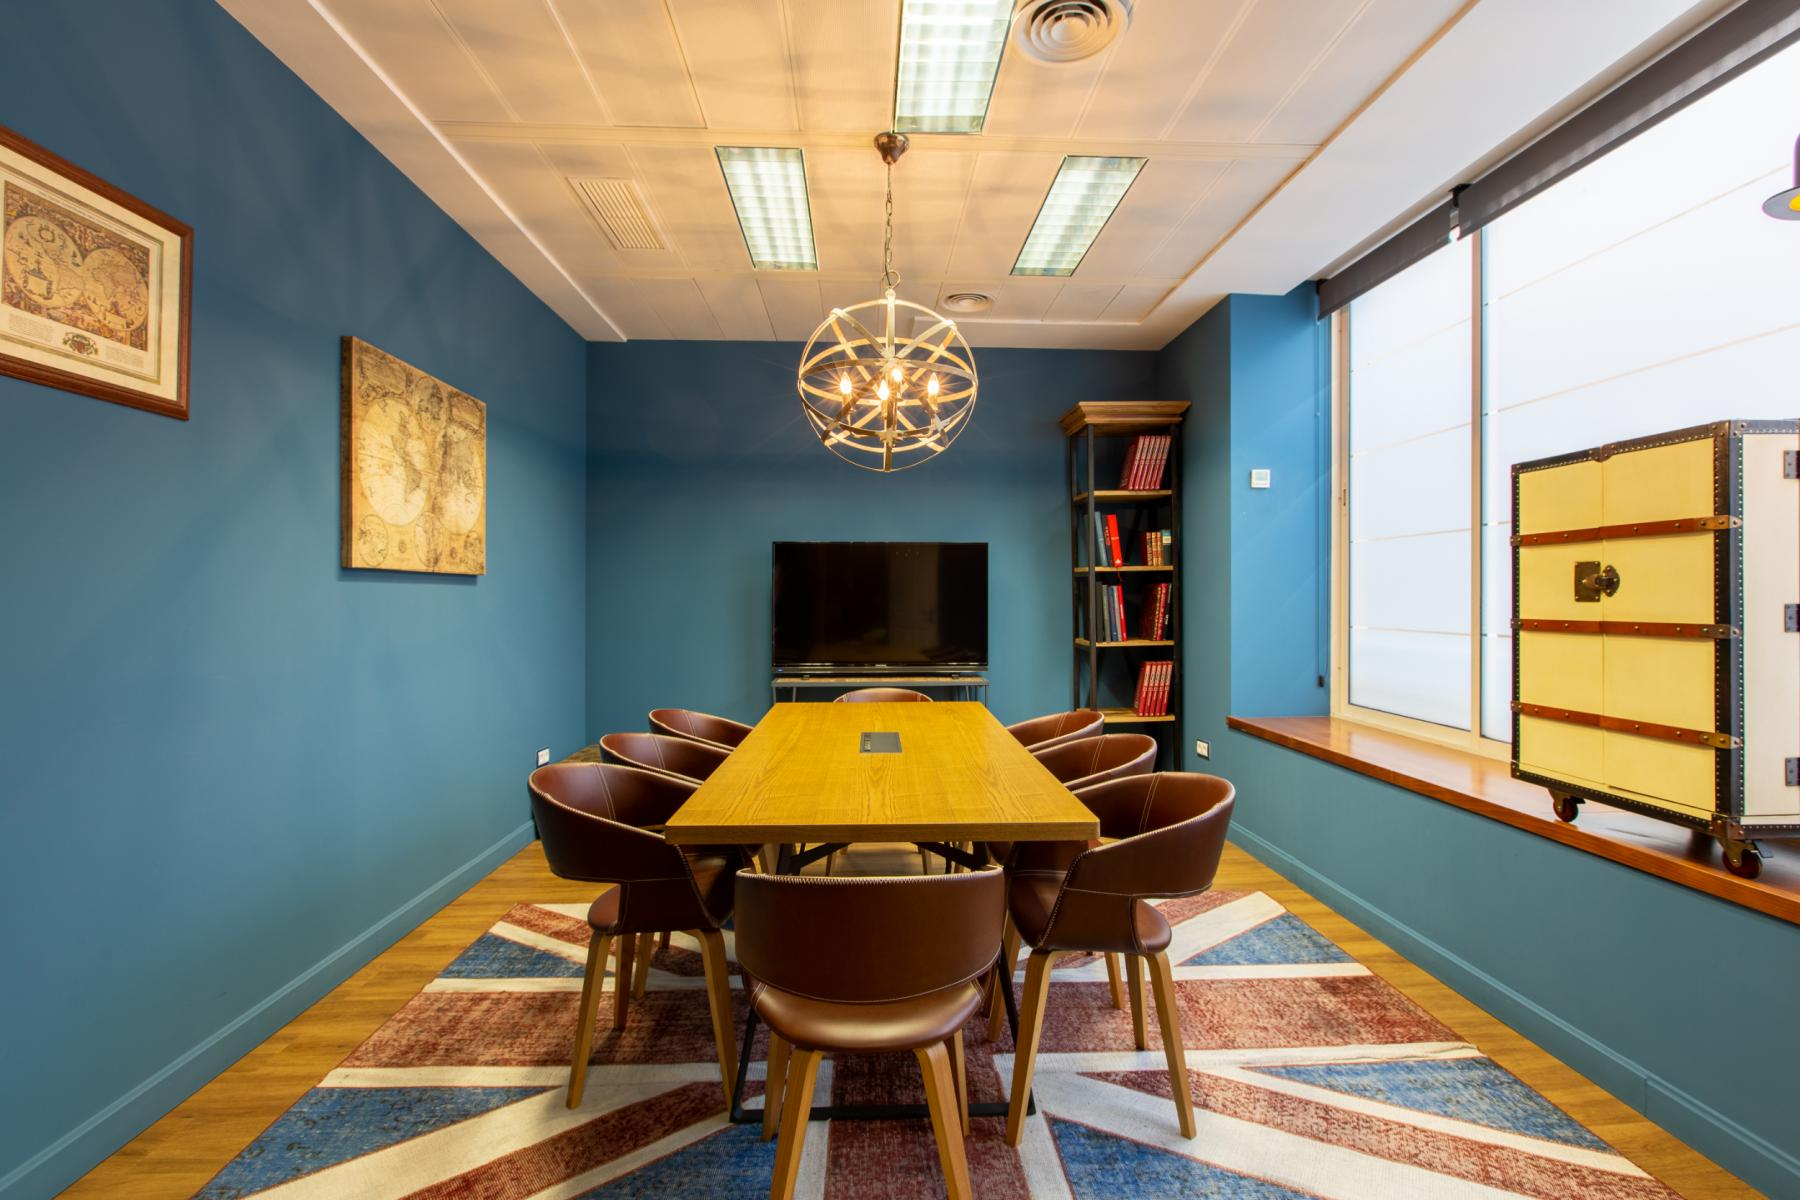 Creative meeting rooms to rent